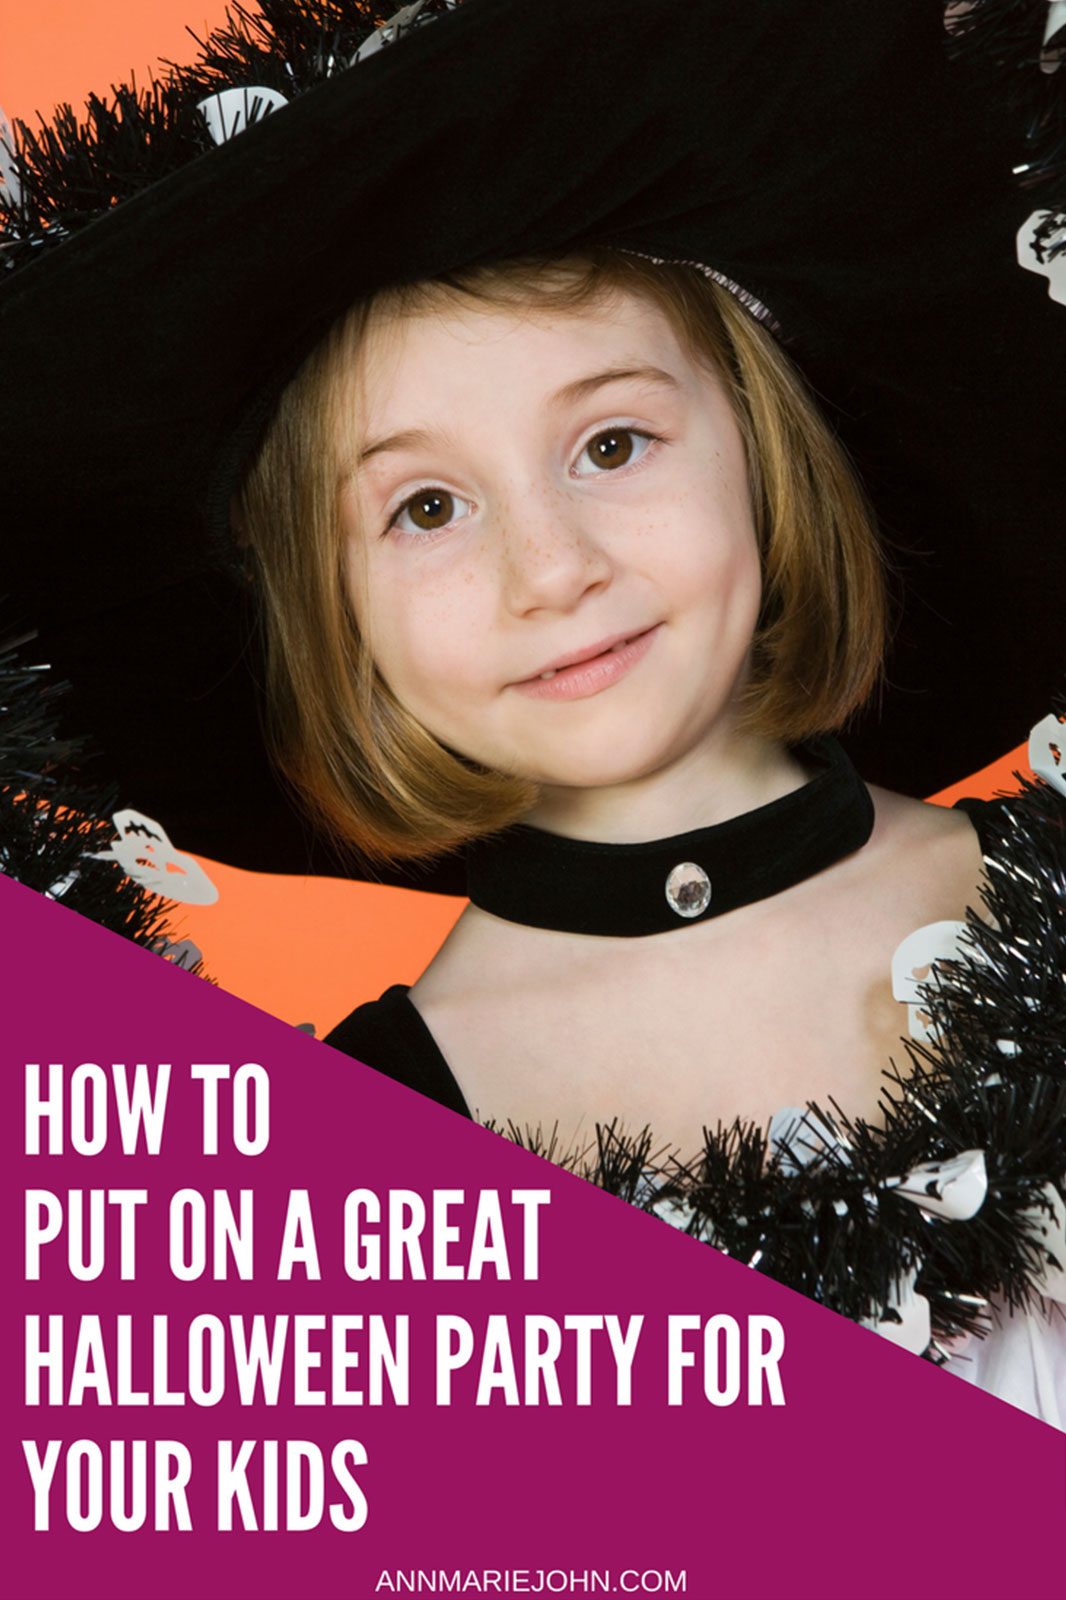 How to put on a great halloween party for your kids for How to have a great halloween party